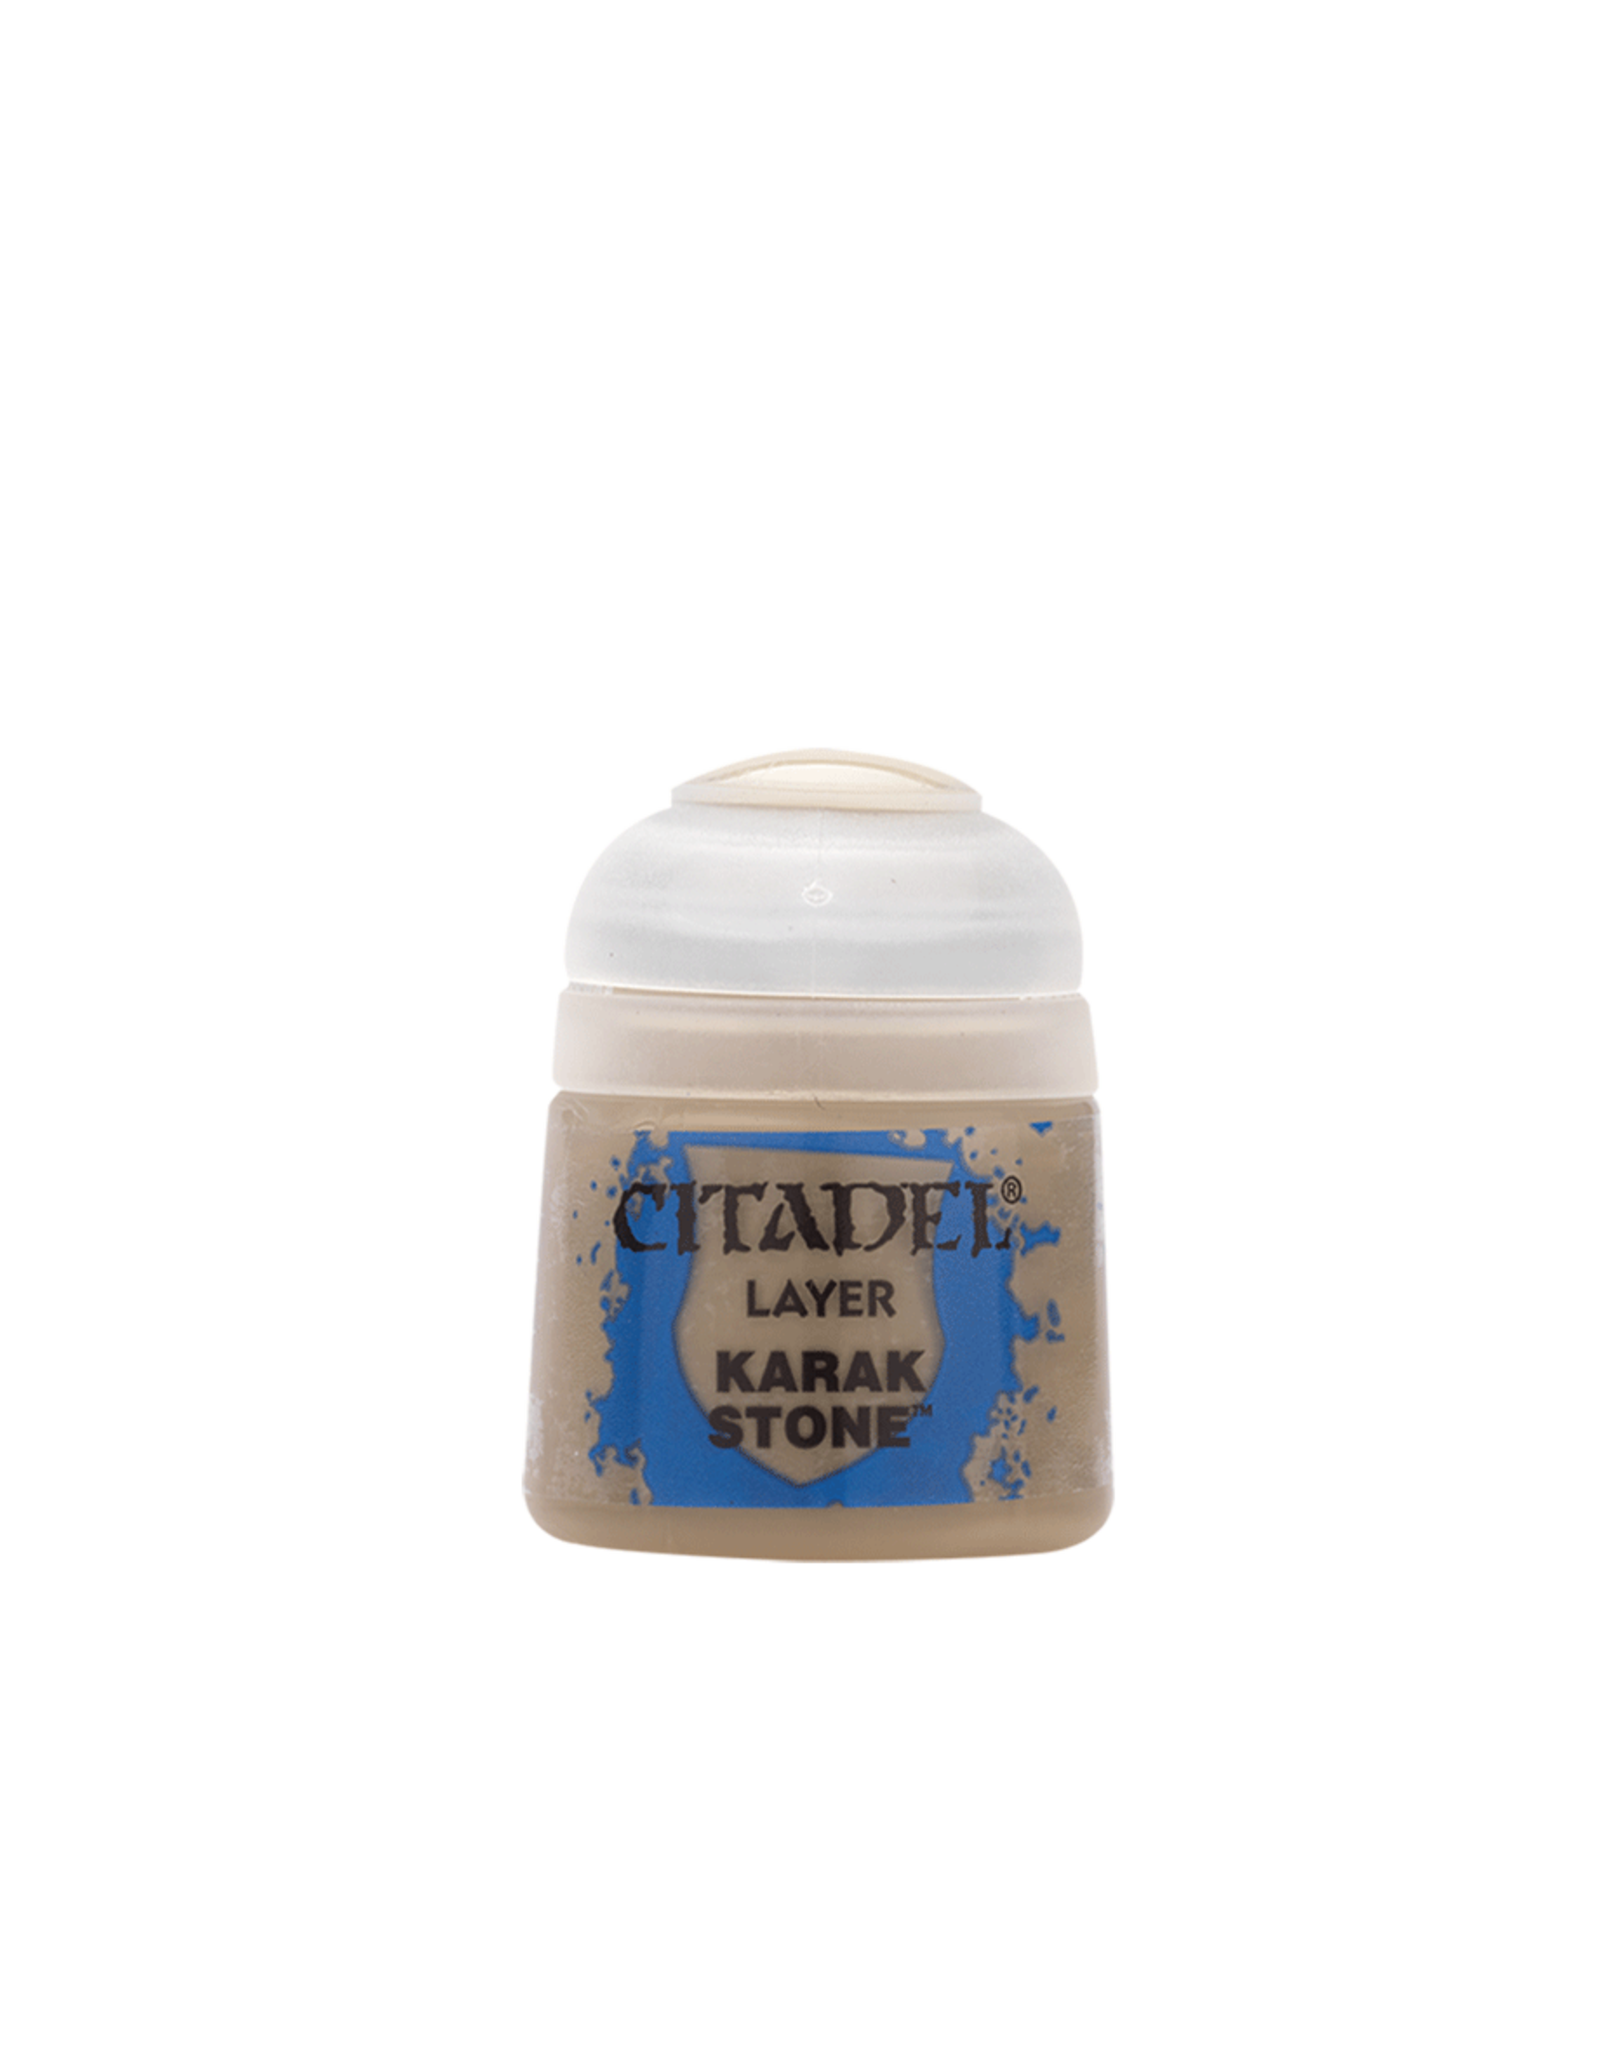 Citadel Citadel Paints Layer Paint Karak Stone